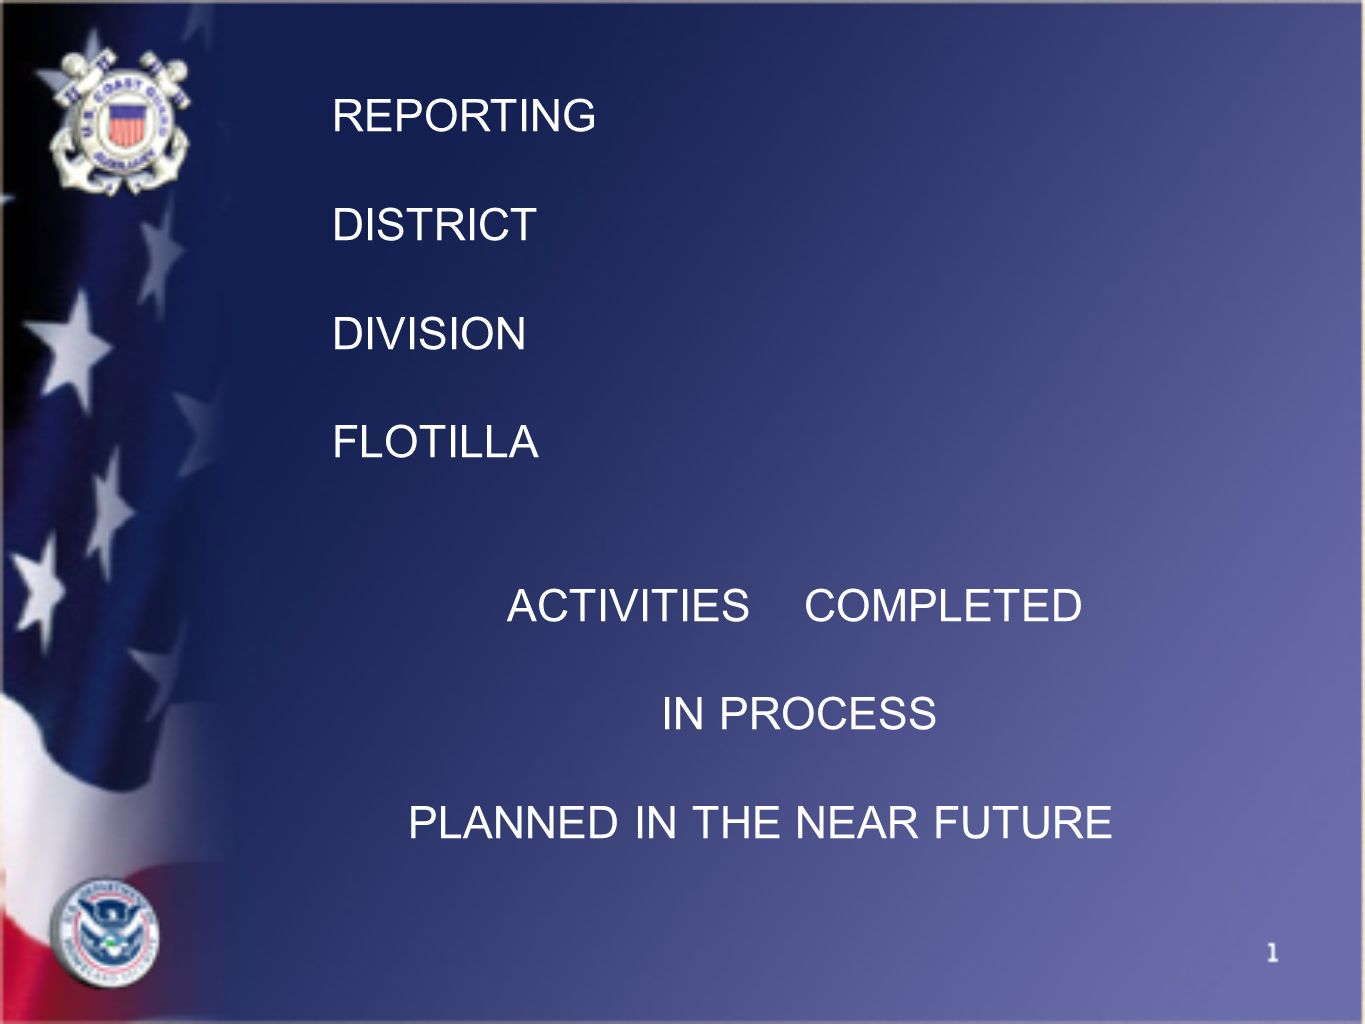 REPORTING DISTRICT DIVISION FLOTILLA ACTIVITIES COMPLETED IN PROCESS PLANNED IN THE NEAR FUTURE